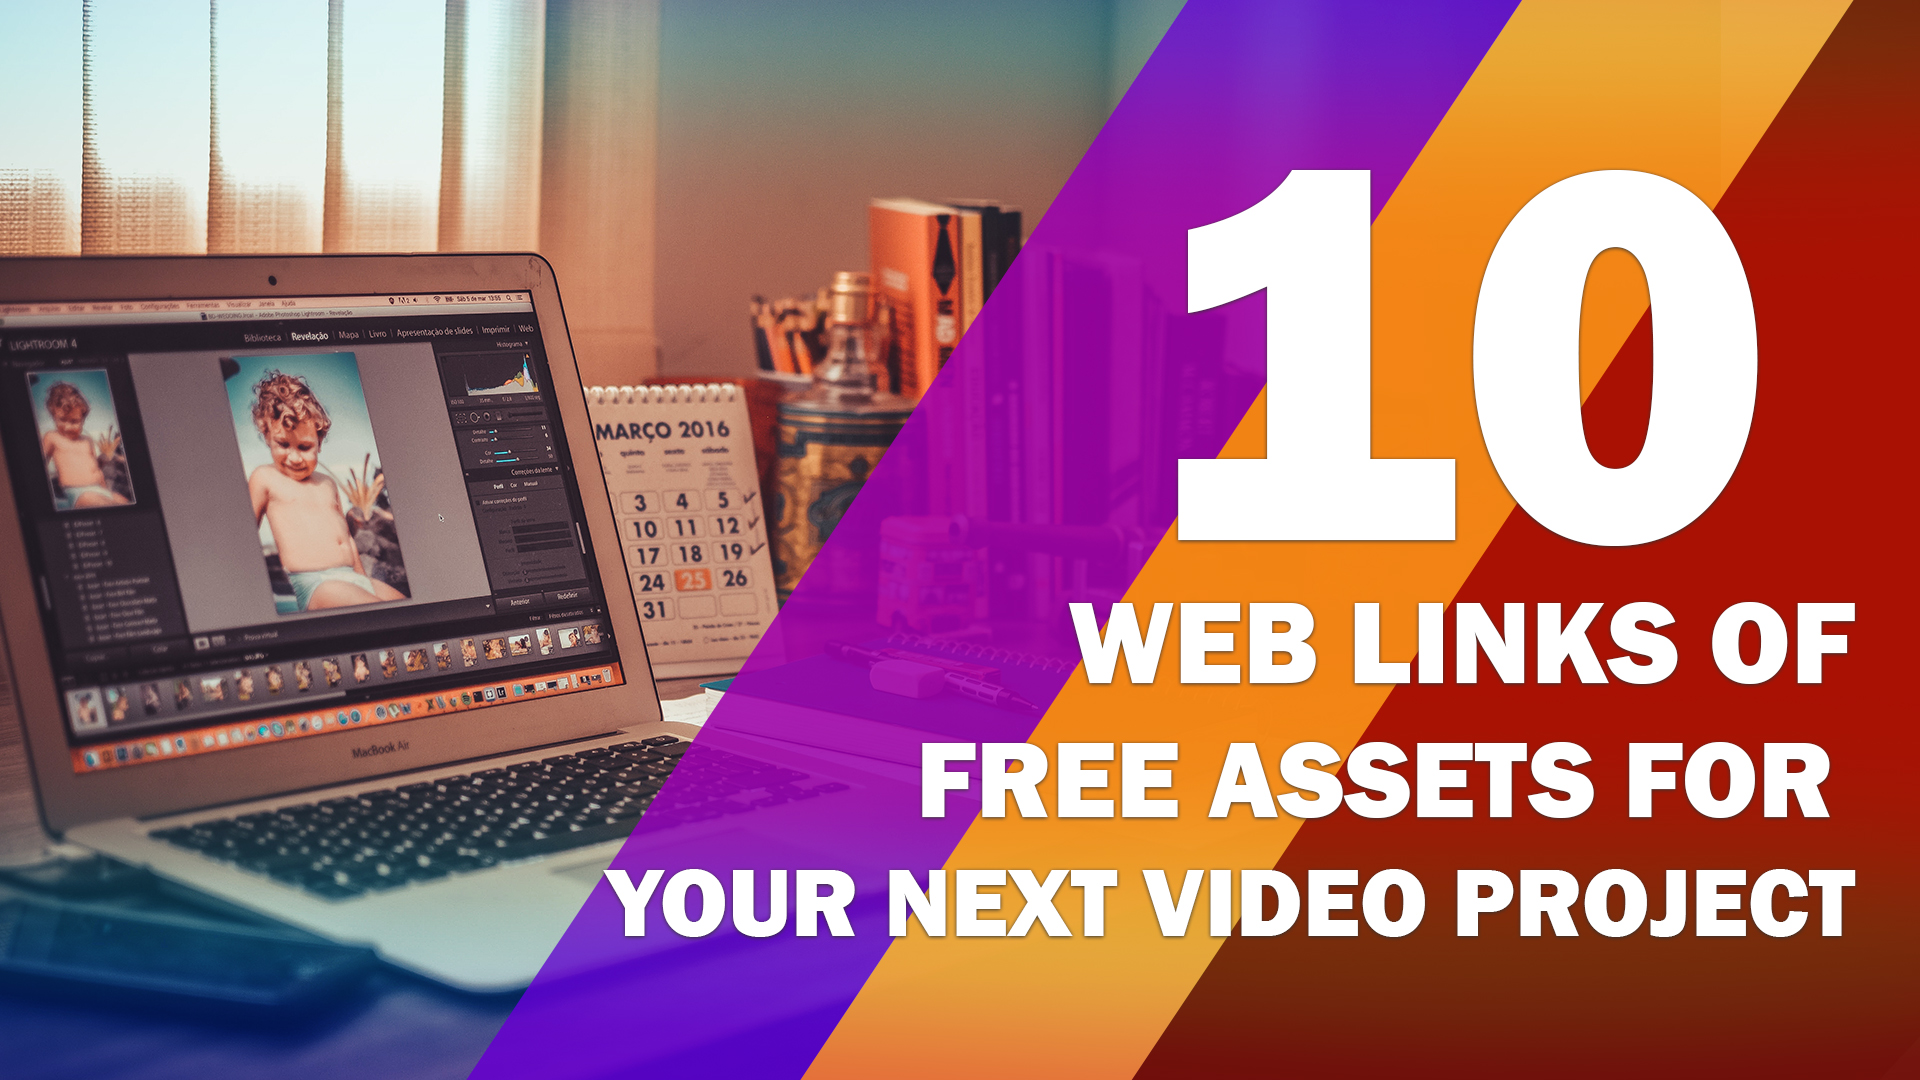 Top 10 Web Links Of Free Assets For Your Next Video Project